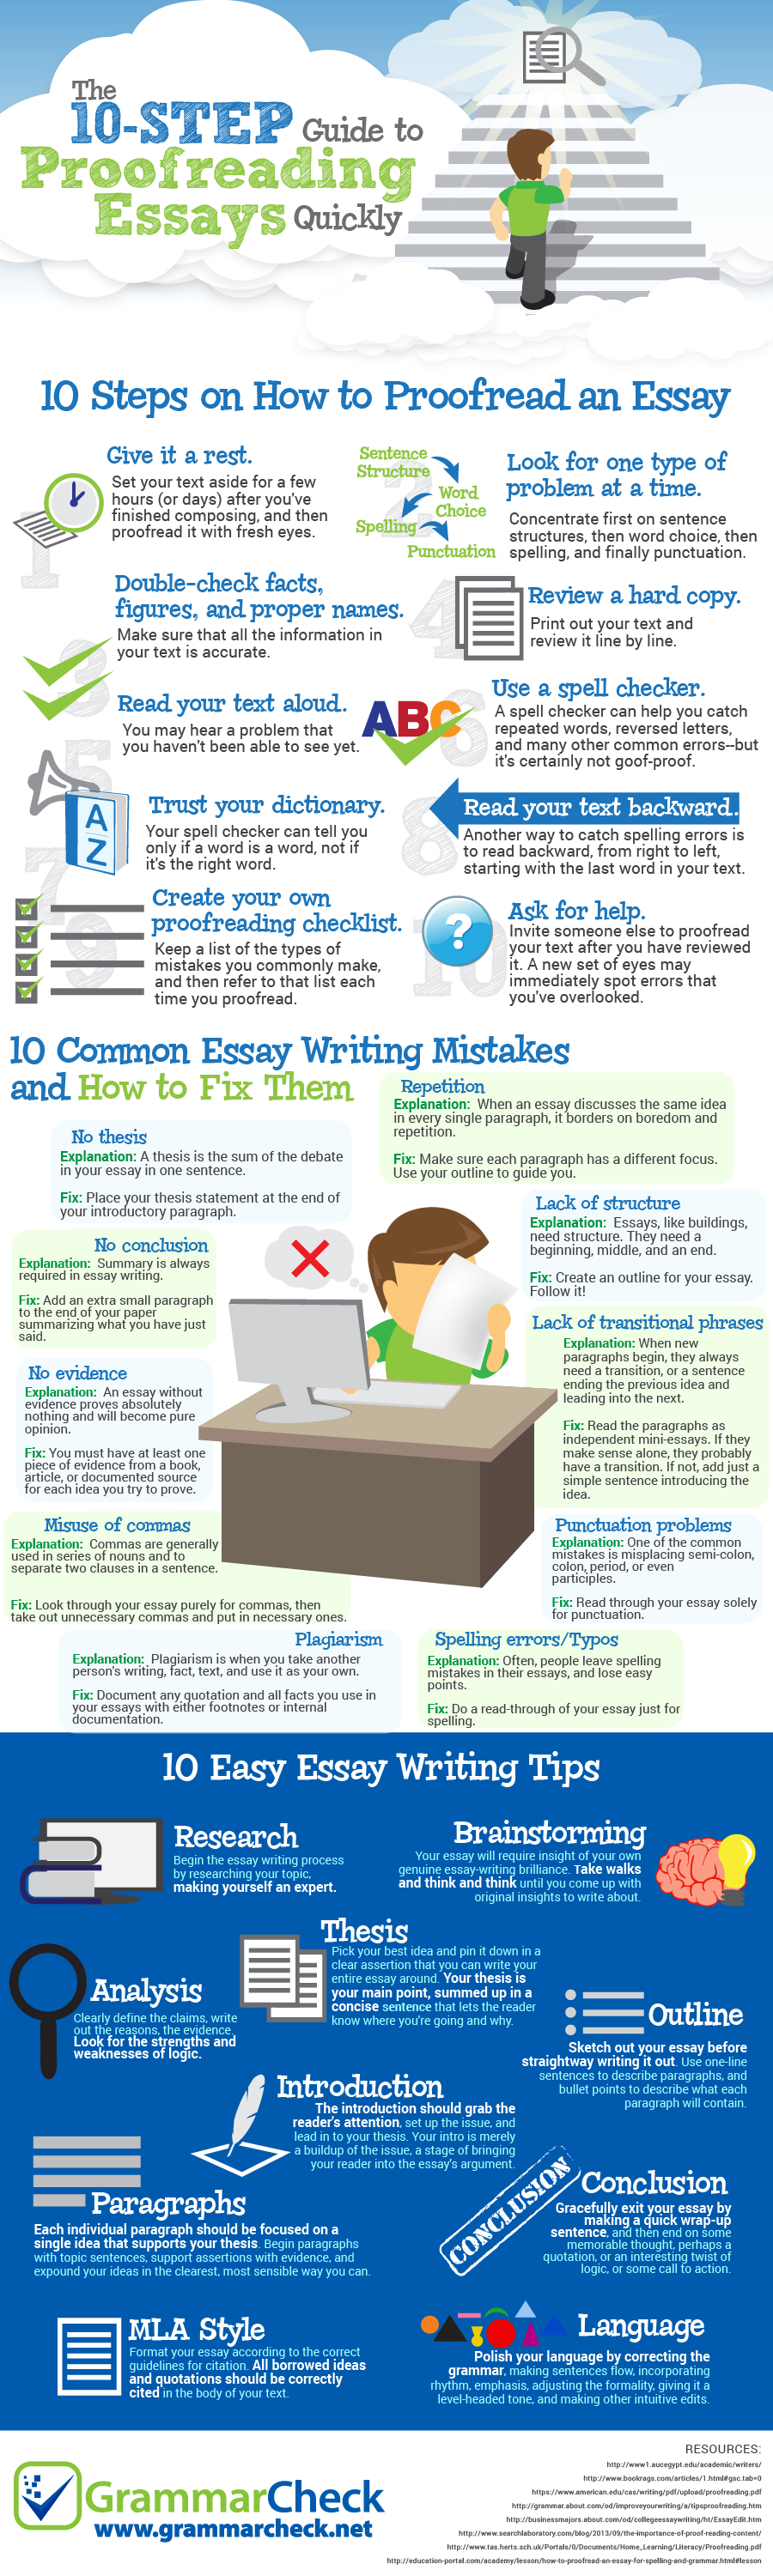 infographic essay proofreading jpg essay on birthday party